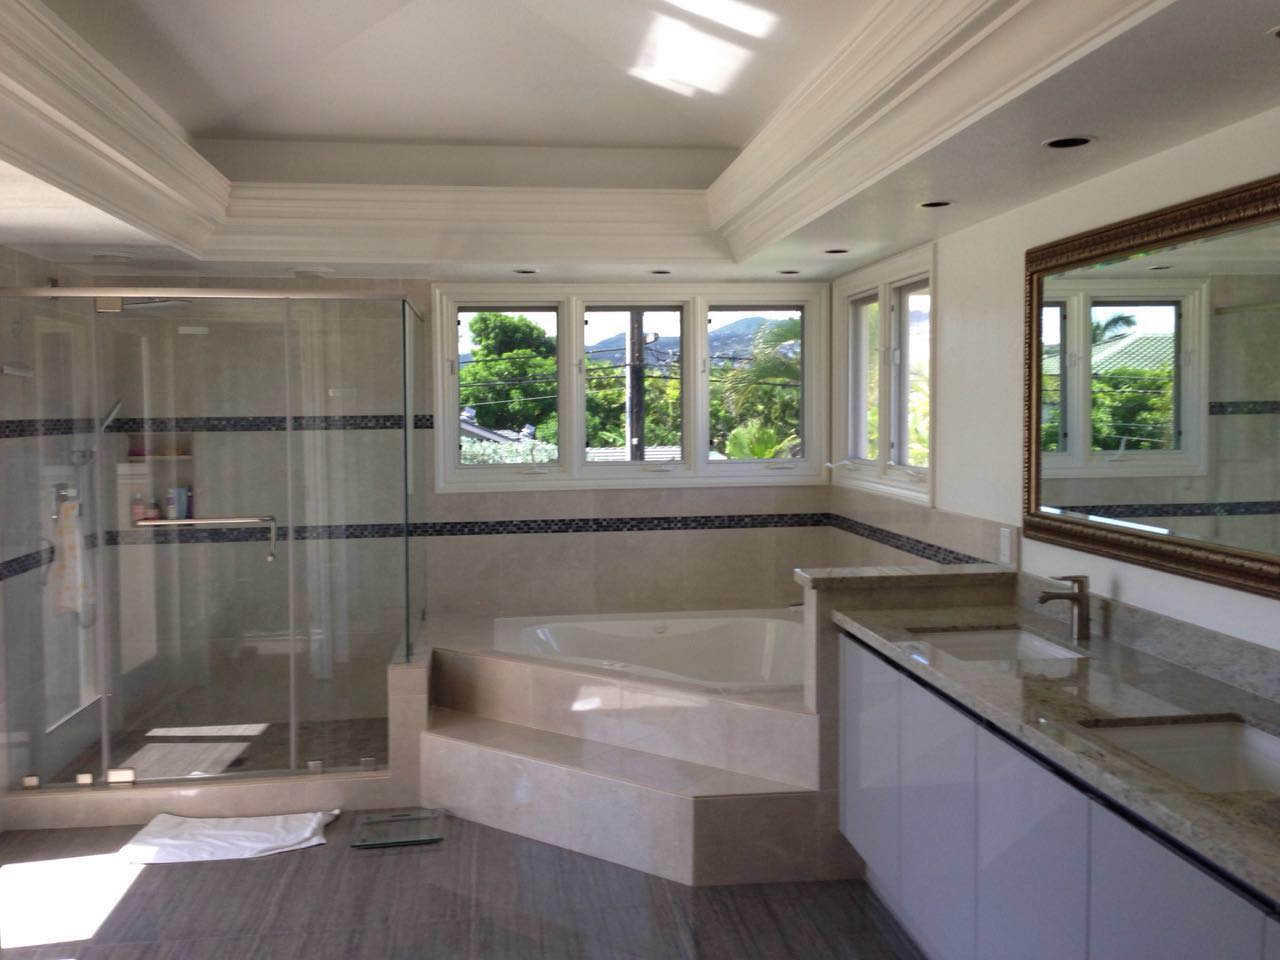 Get a bathroom remodel in Kapolei